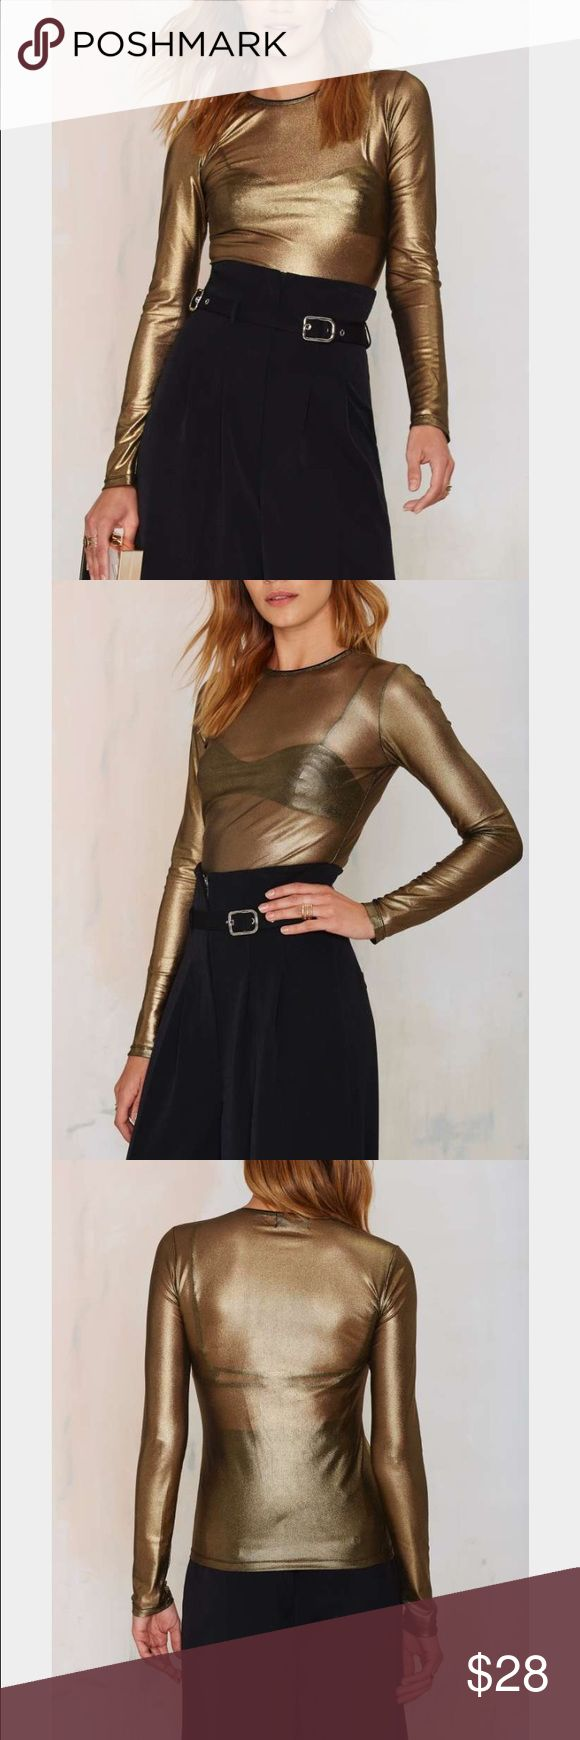 Nasty Gal Gold Long Sleeve Sheer Top Nasty Gal Gold Long Sleeve Sheer Top- never worn ! Nasty Gal Tops Tees - Long Sleeve